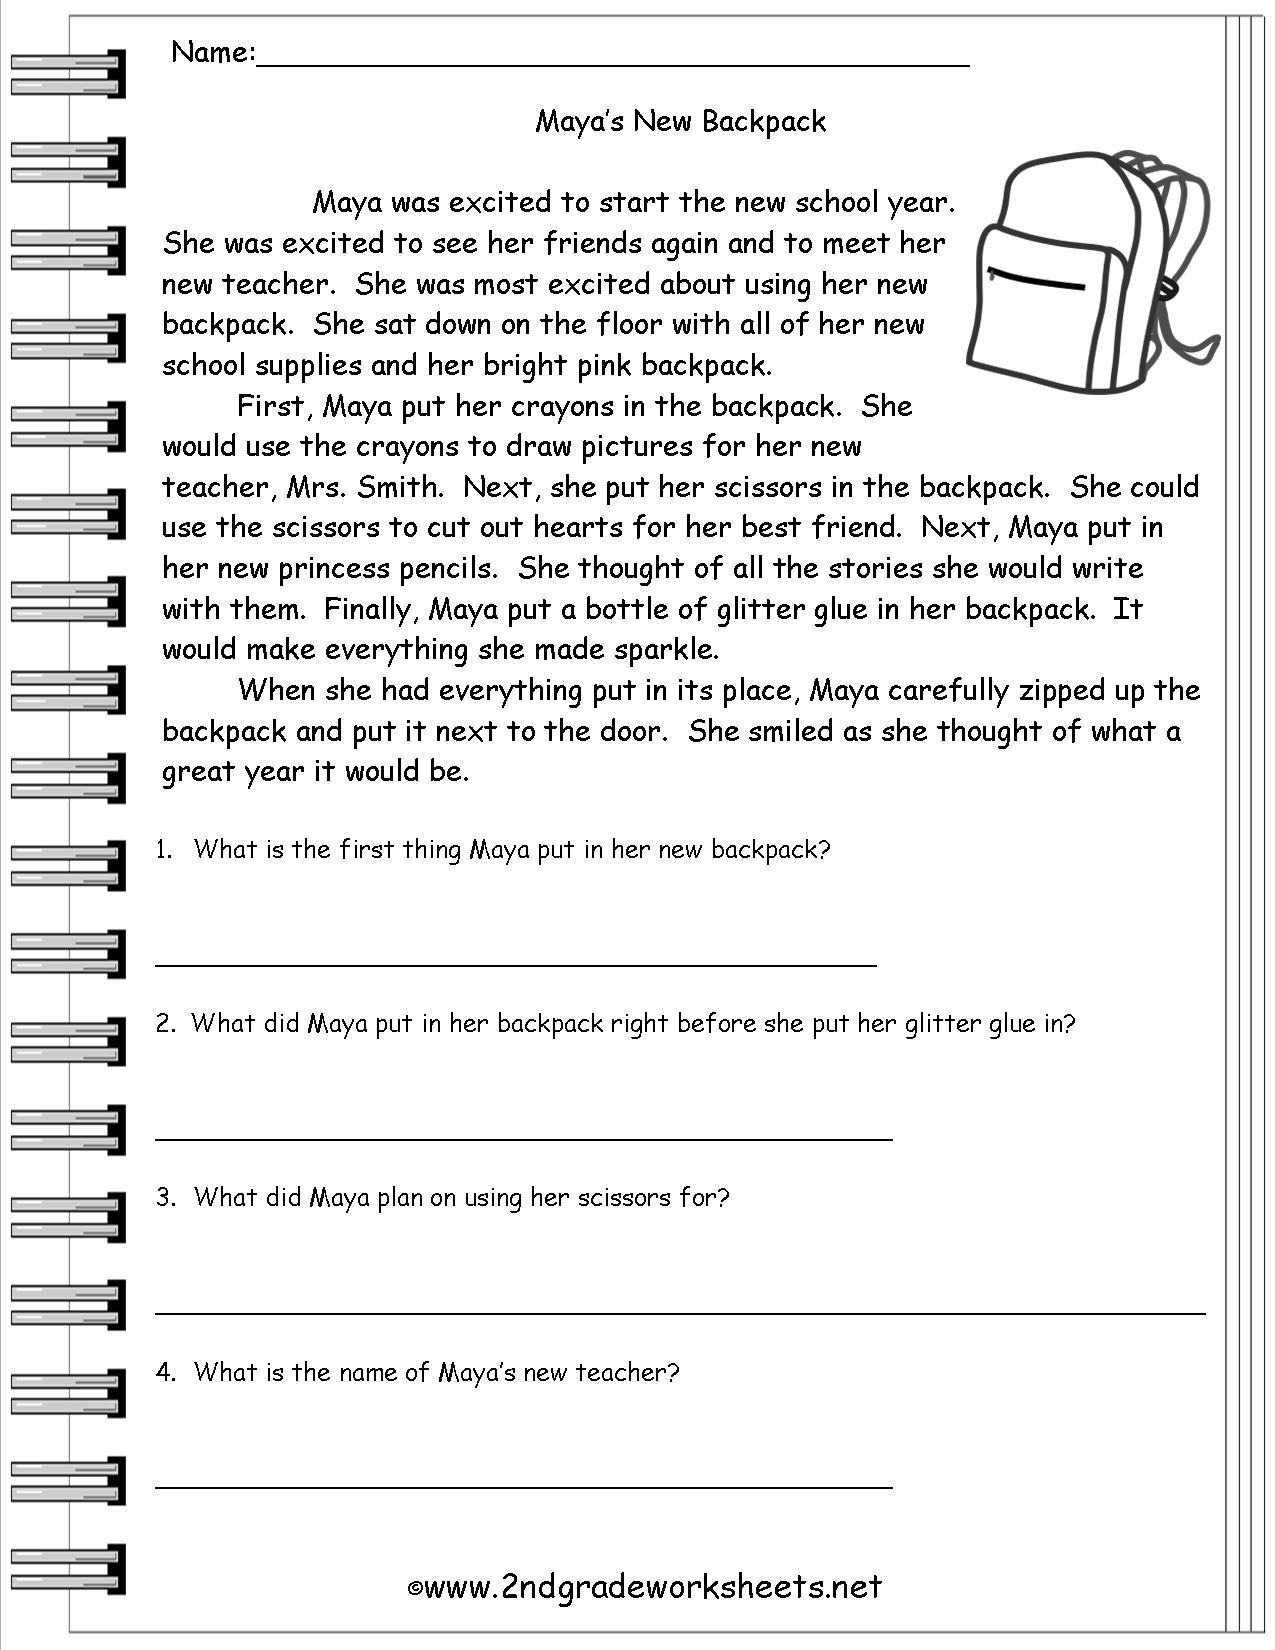 Free Printable Reading Comprehension Worksheets 3Rd Grade To Print - Free Printable Reading Comprehension Worksheets For Adults